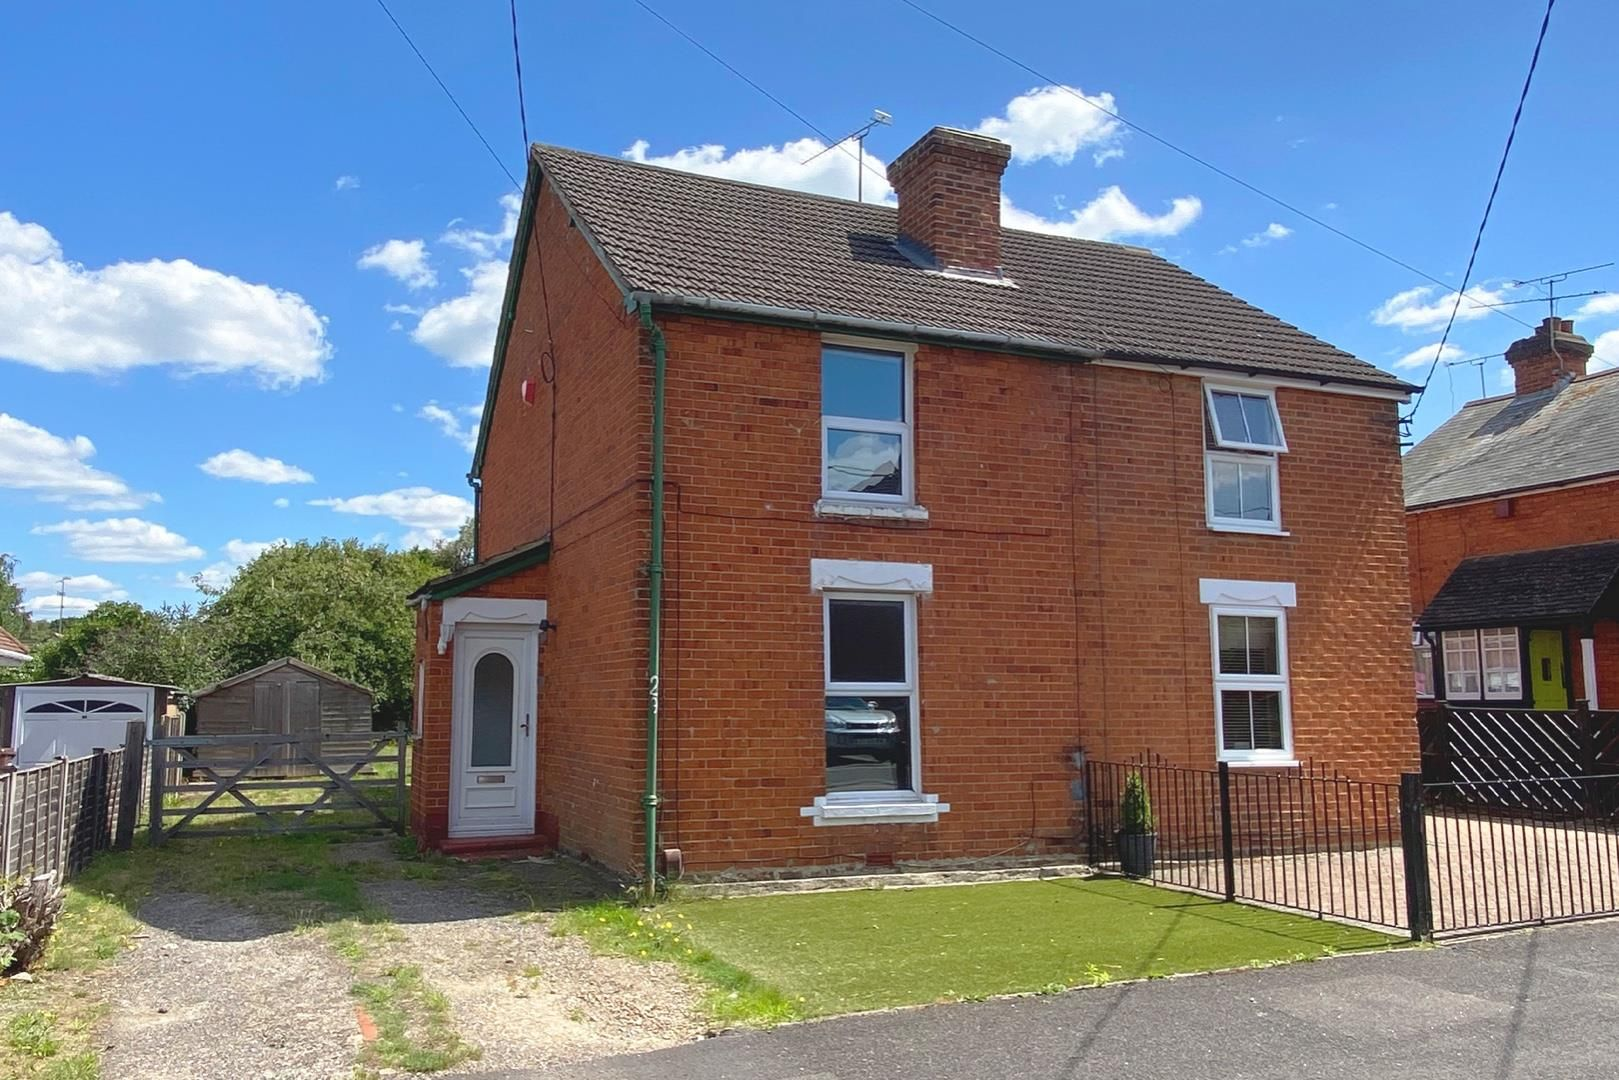 2 bed semi-detached for sale, GU14